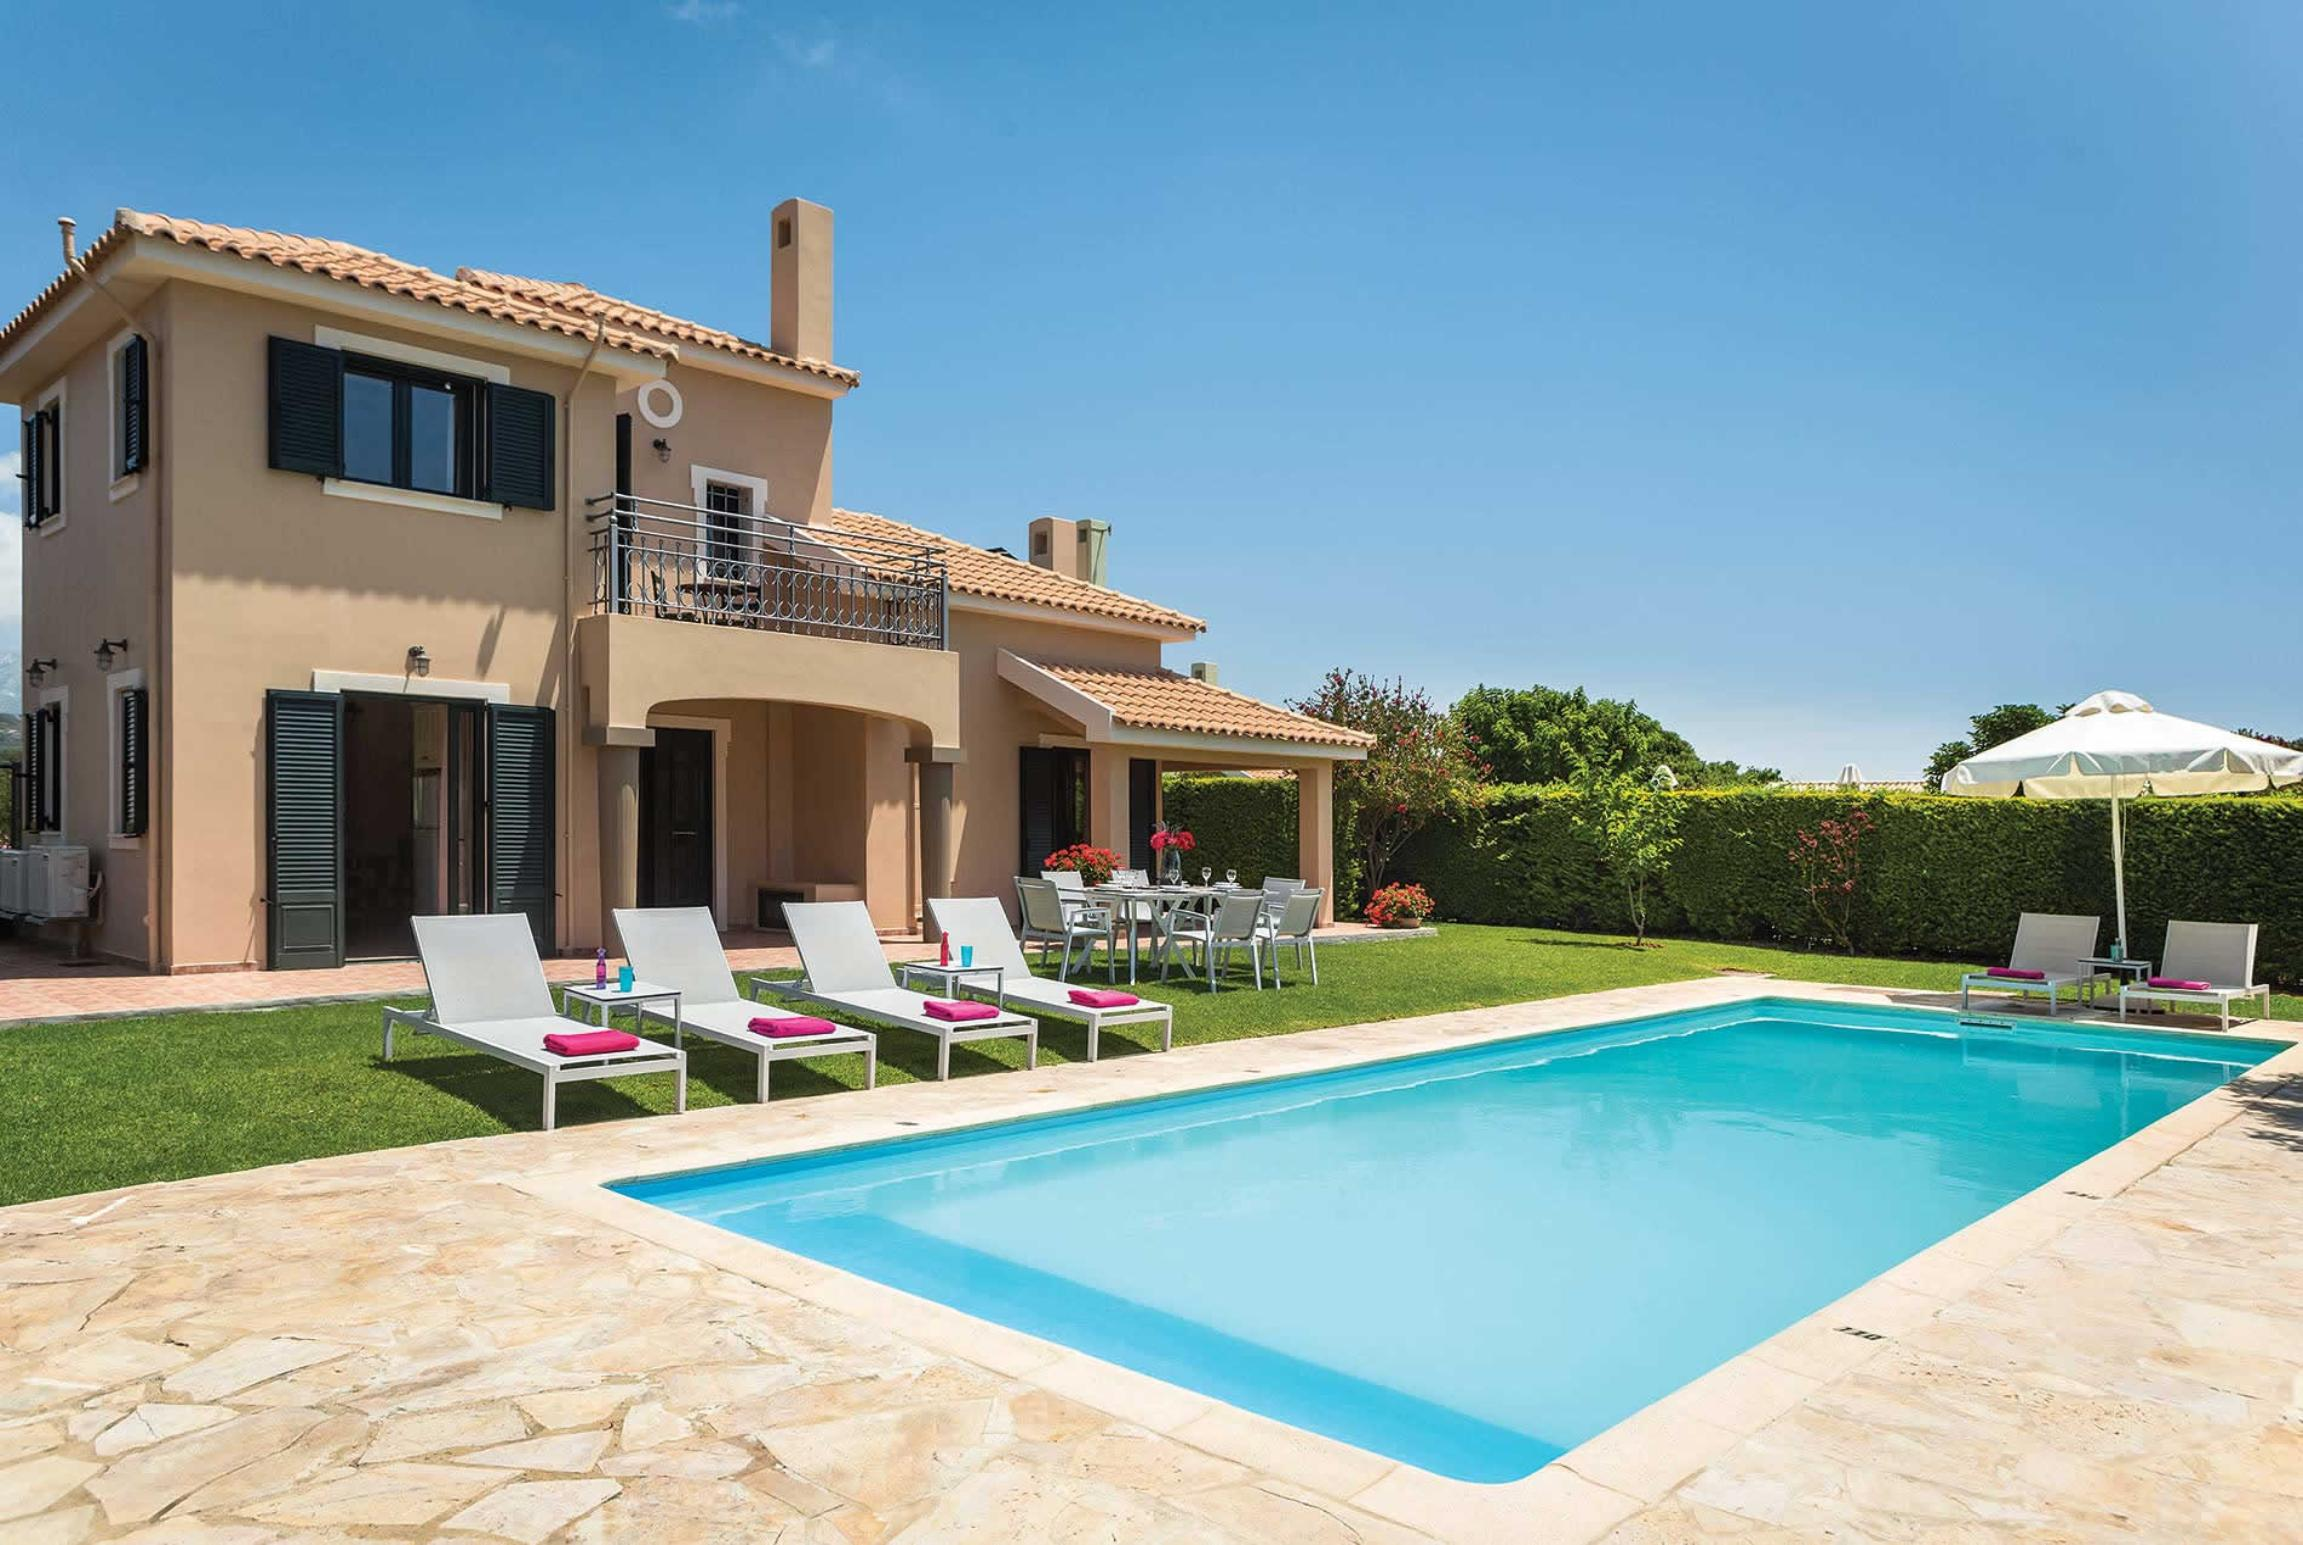 Read more about Iro villa